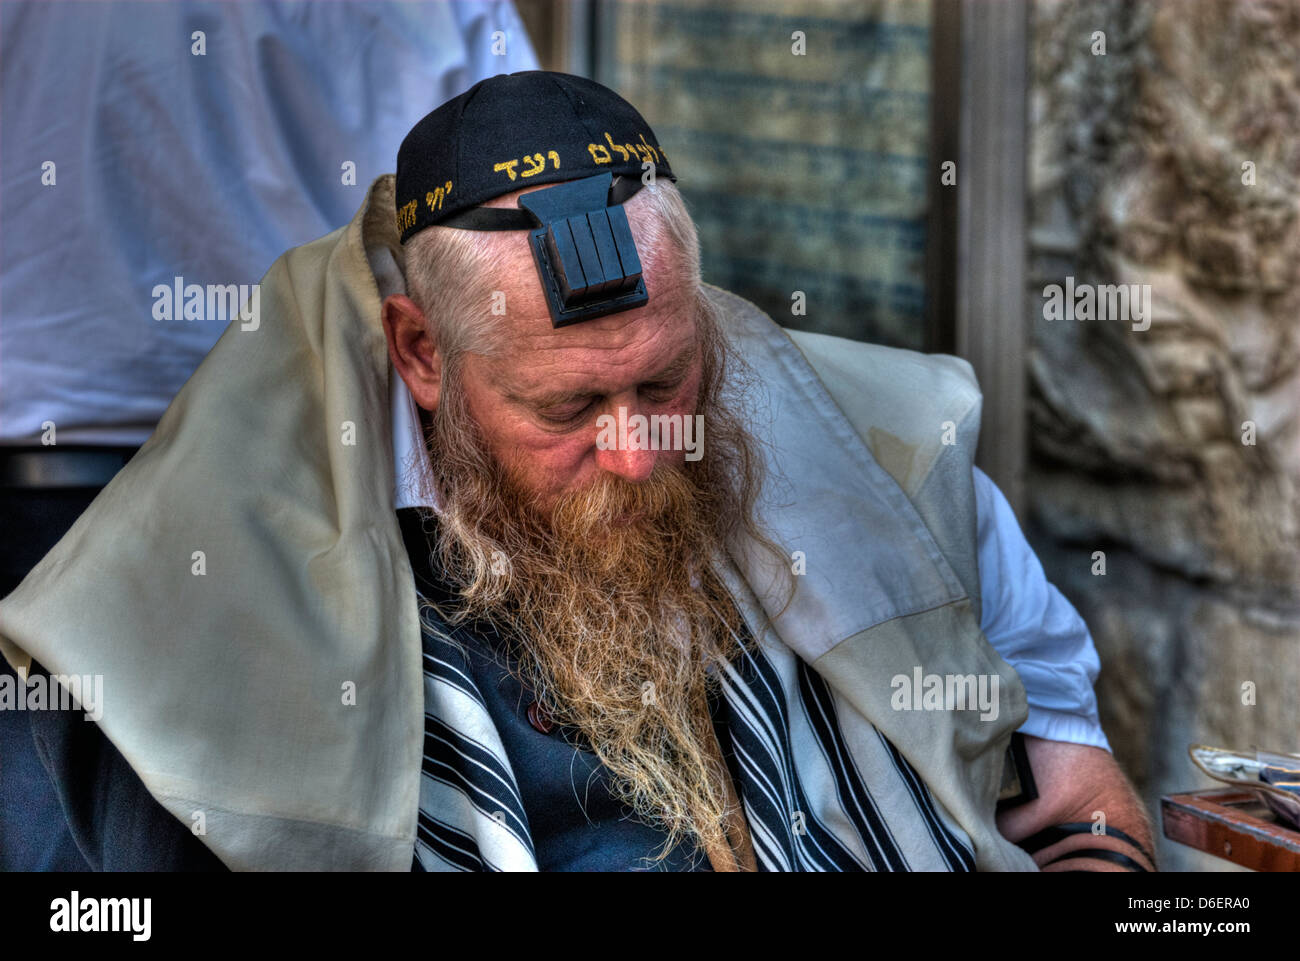 Jewish Man with Tallith and Tfelin - Stock Image